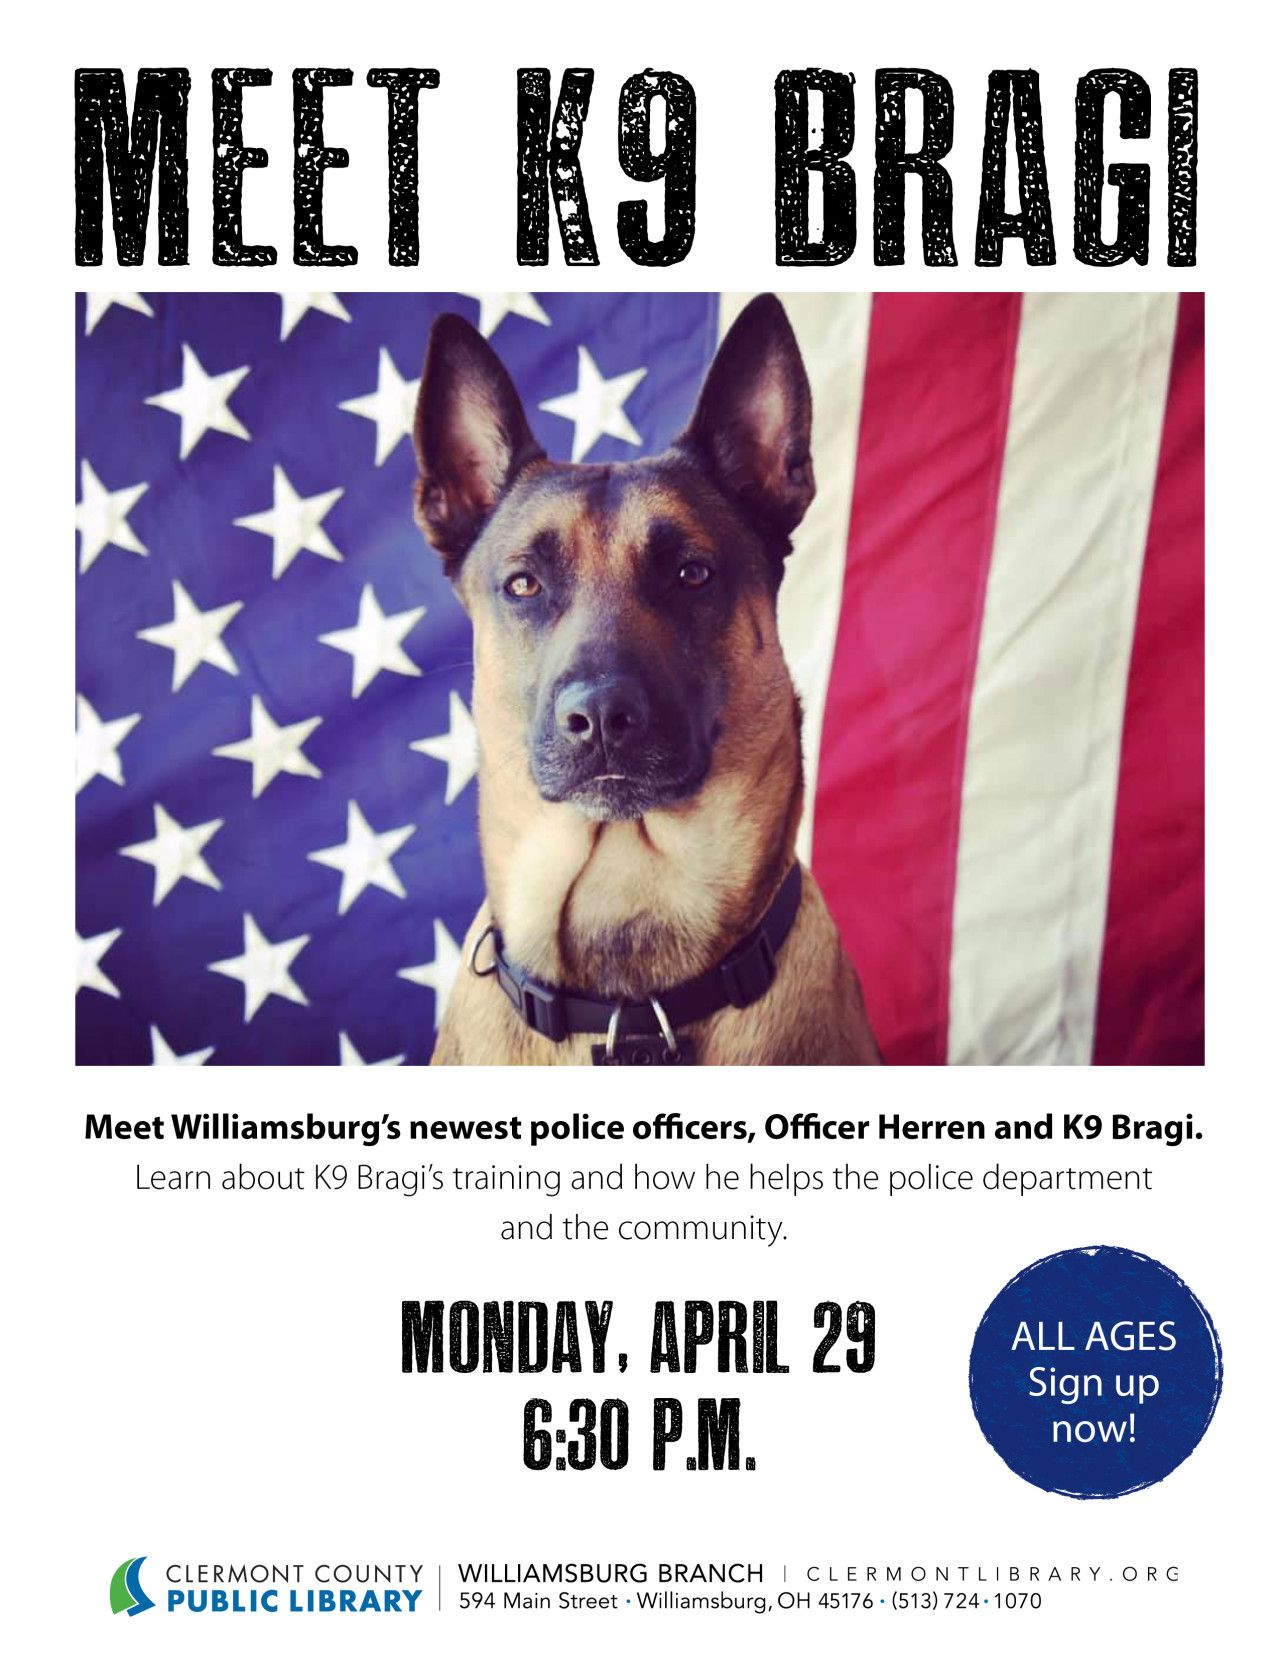 Bring The Kiddos To The Williamsburg Branch Library To Meet K9